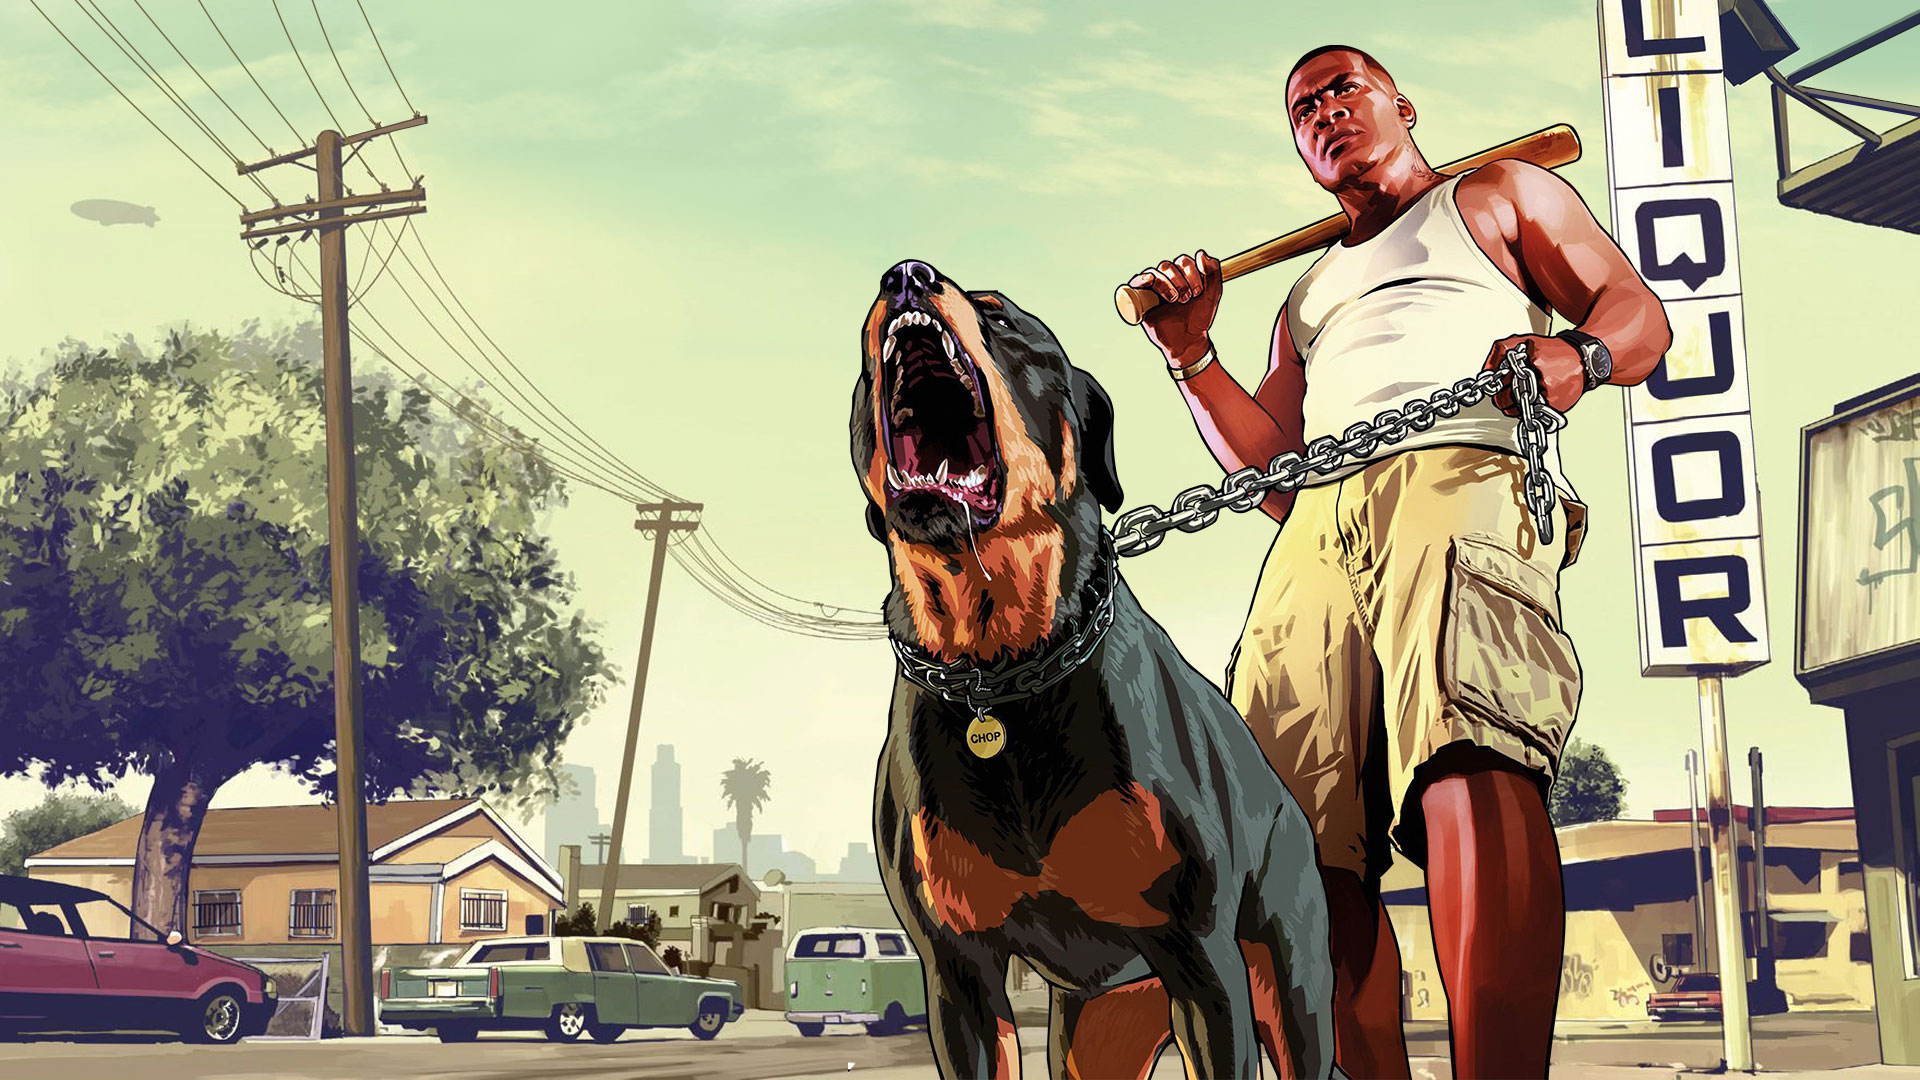 grand-theft-auto_-san-andreas-hd-wallpapers-33183-5029506